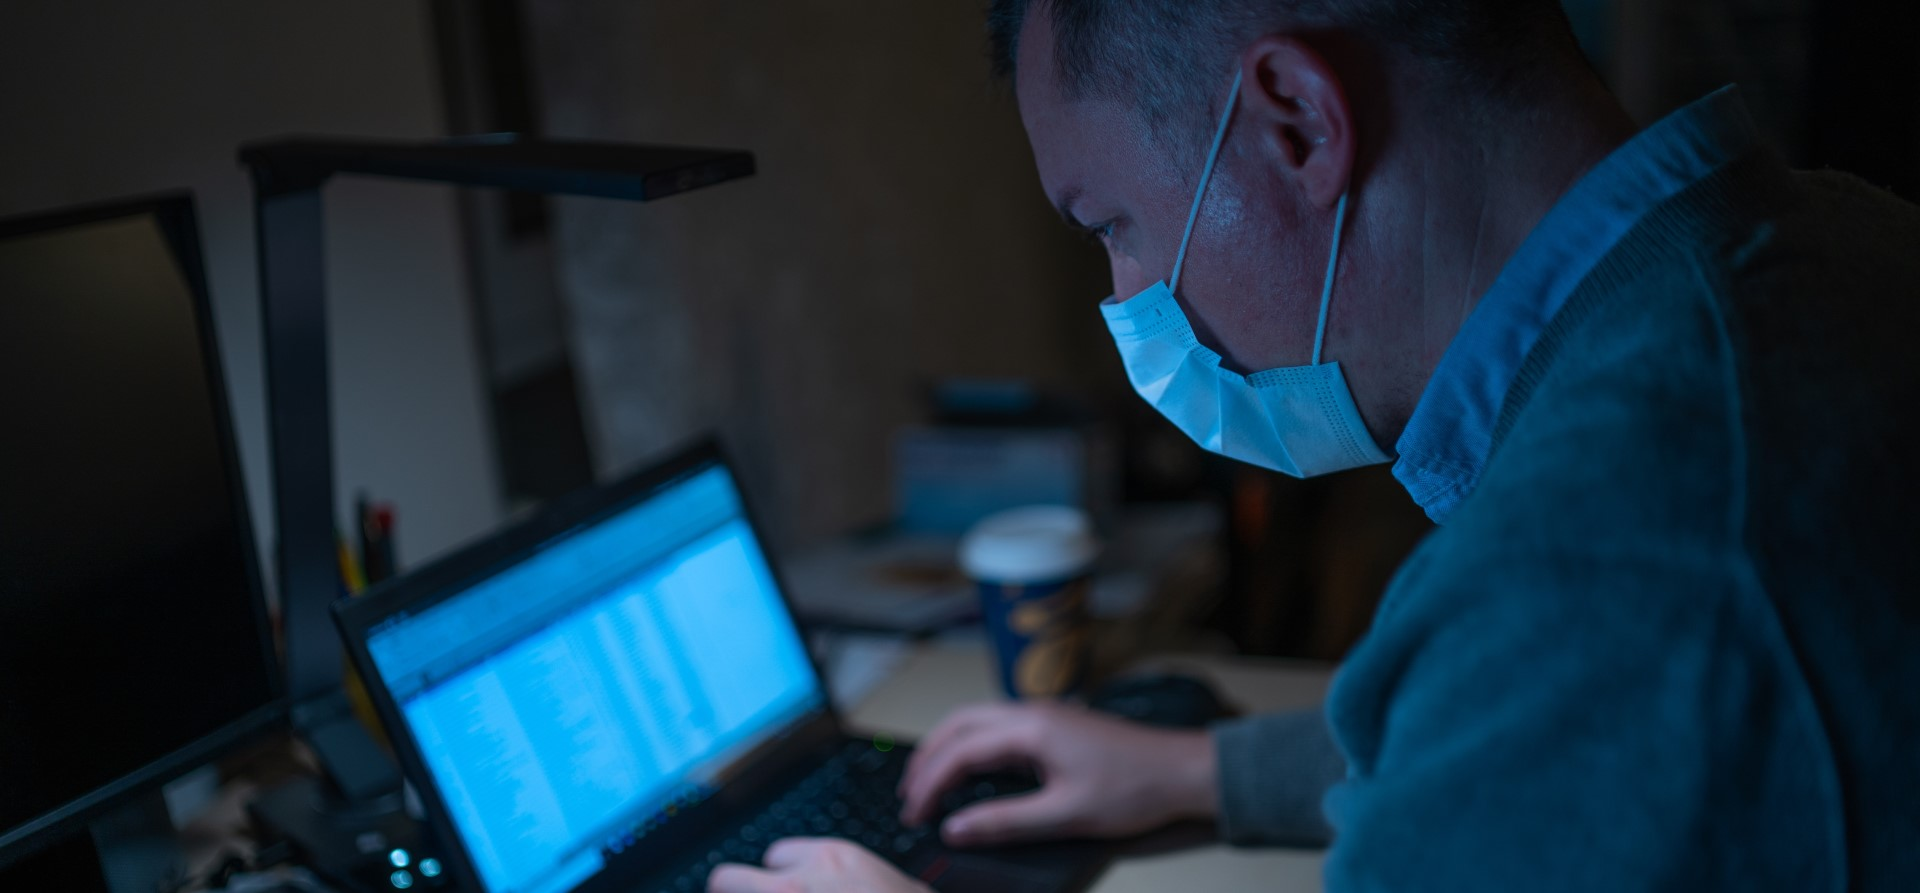 a man deal with cyber security during covid-19